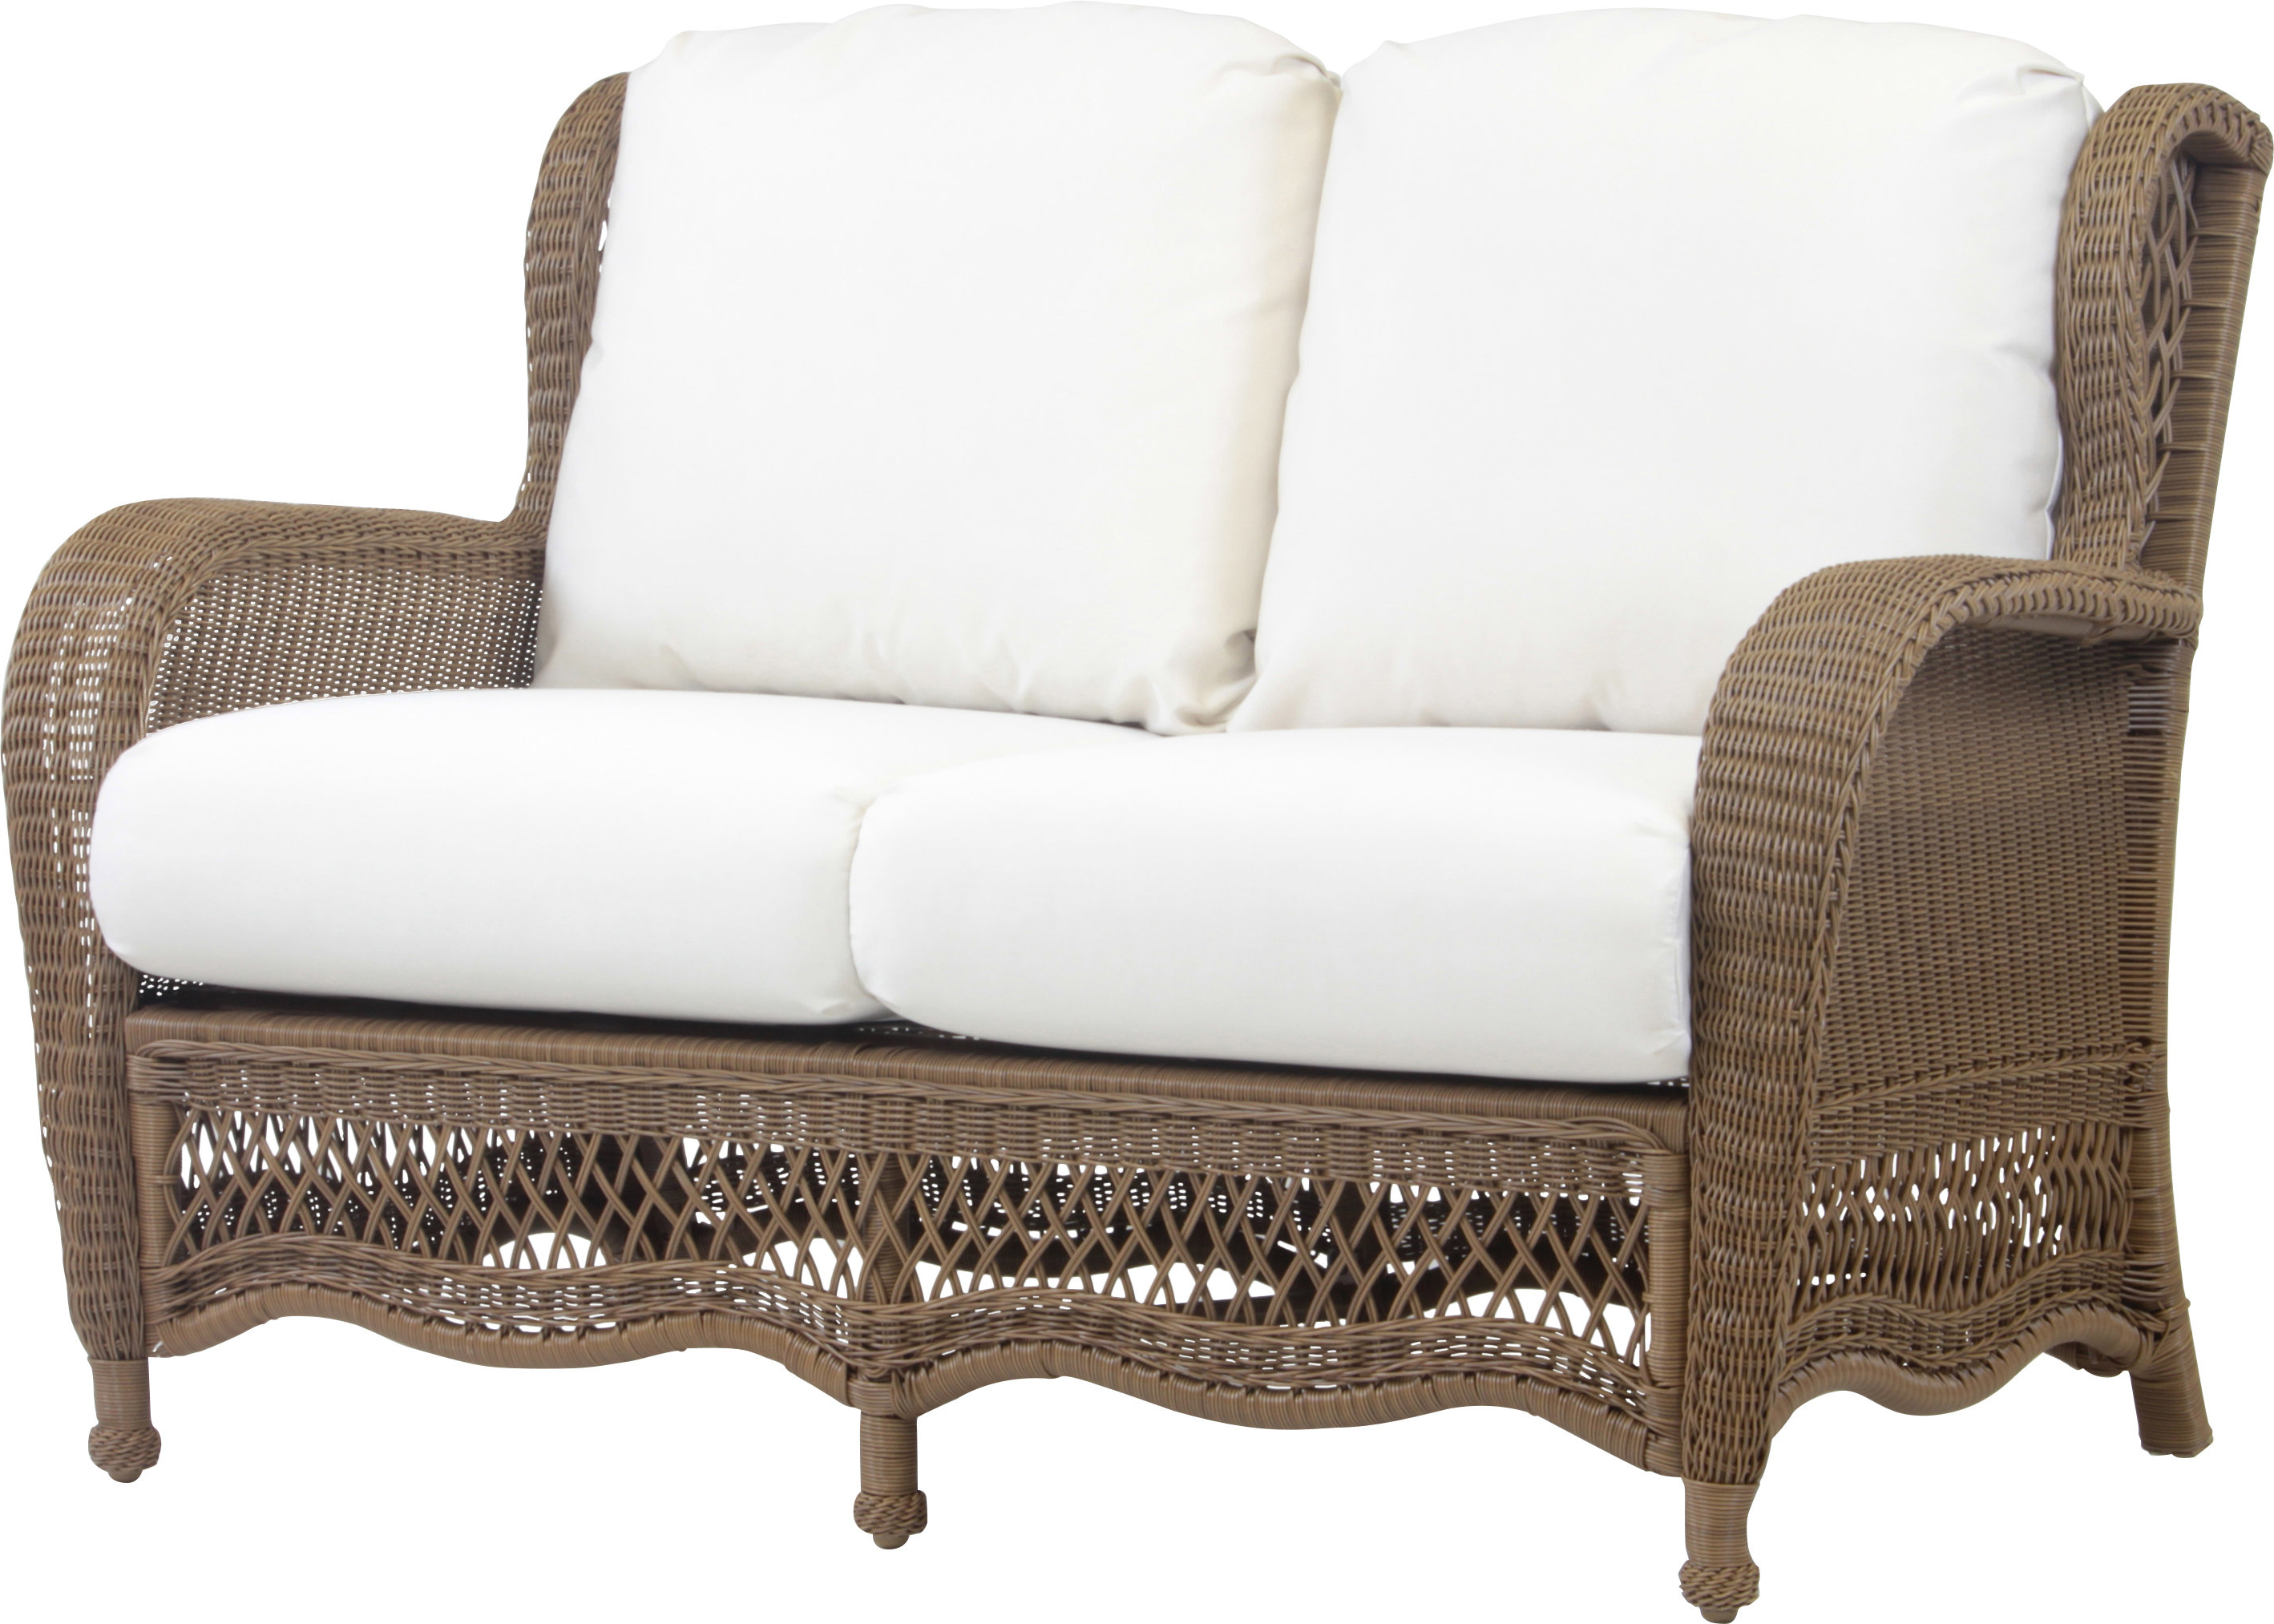 Karan Wicker Patio Loveseats In Fashionable Stoneburner Loveseat With Cushion (View 20 of 20)